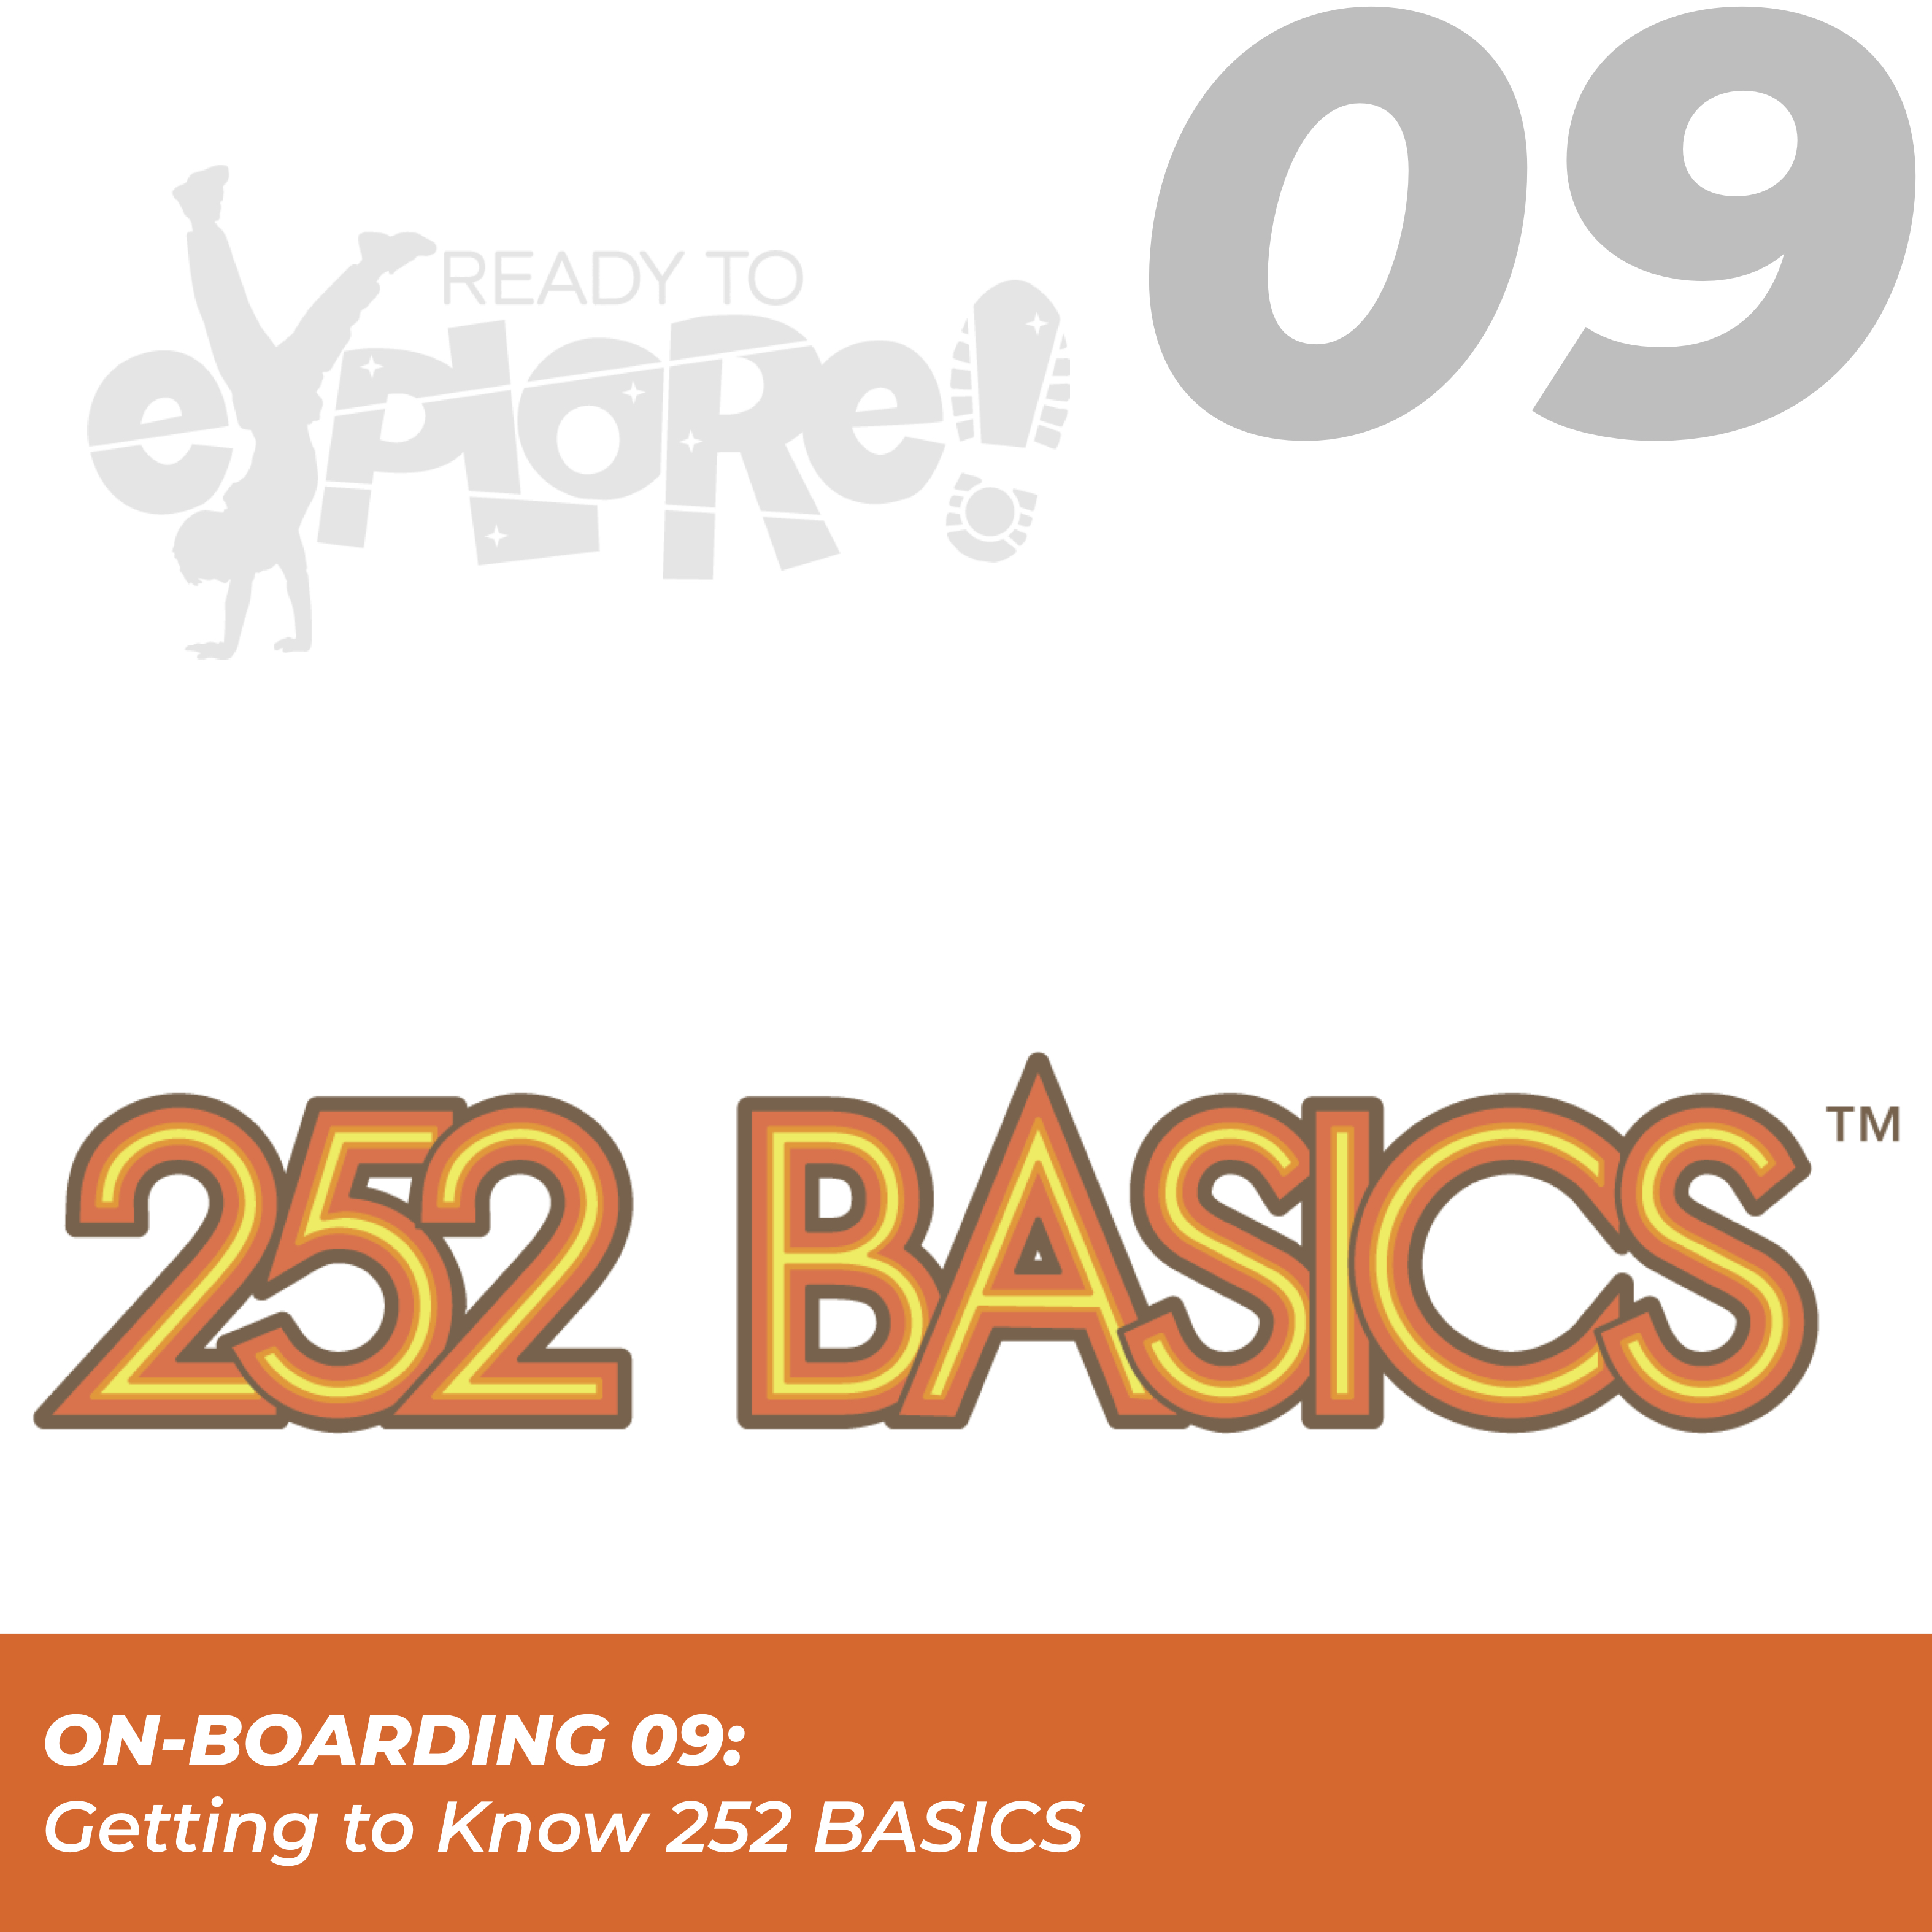 Click here for On-boarding 09: Getting to know 252 Basics